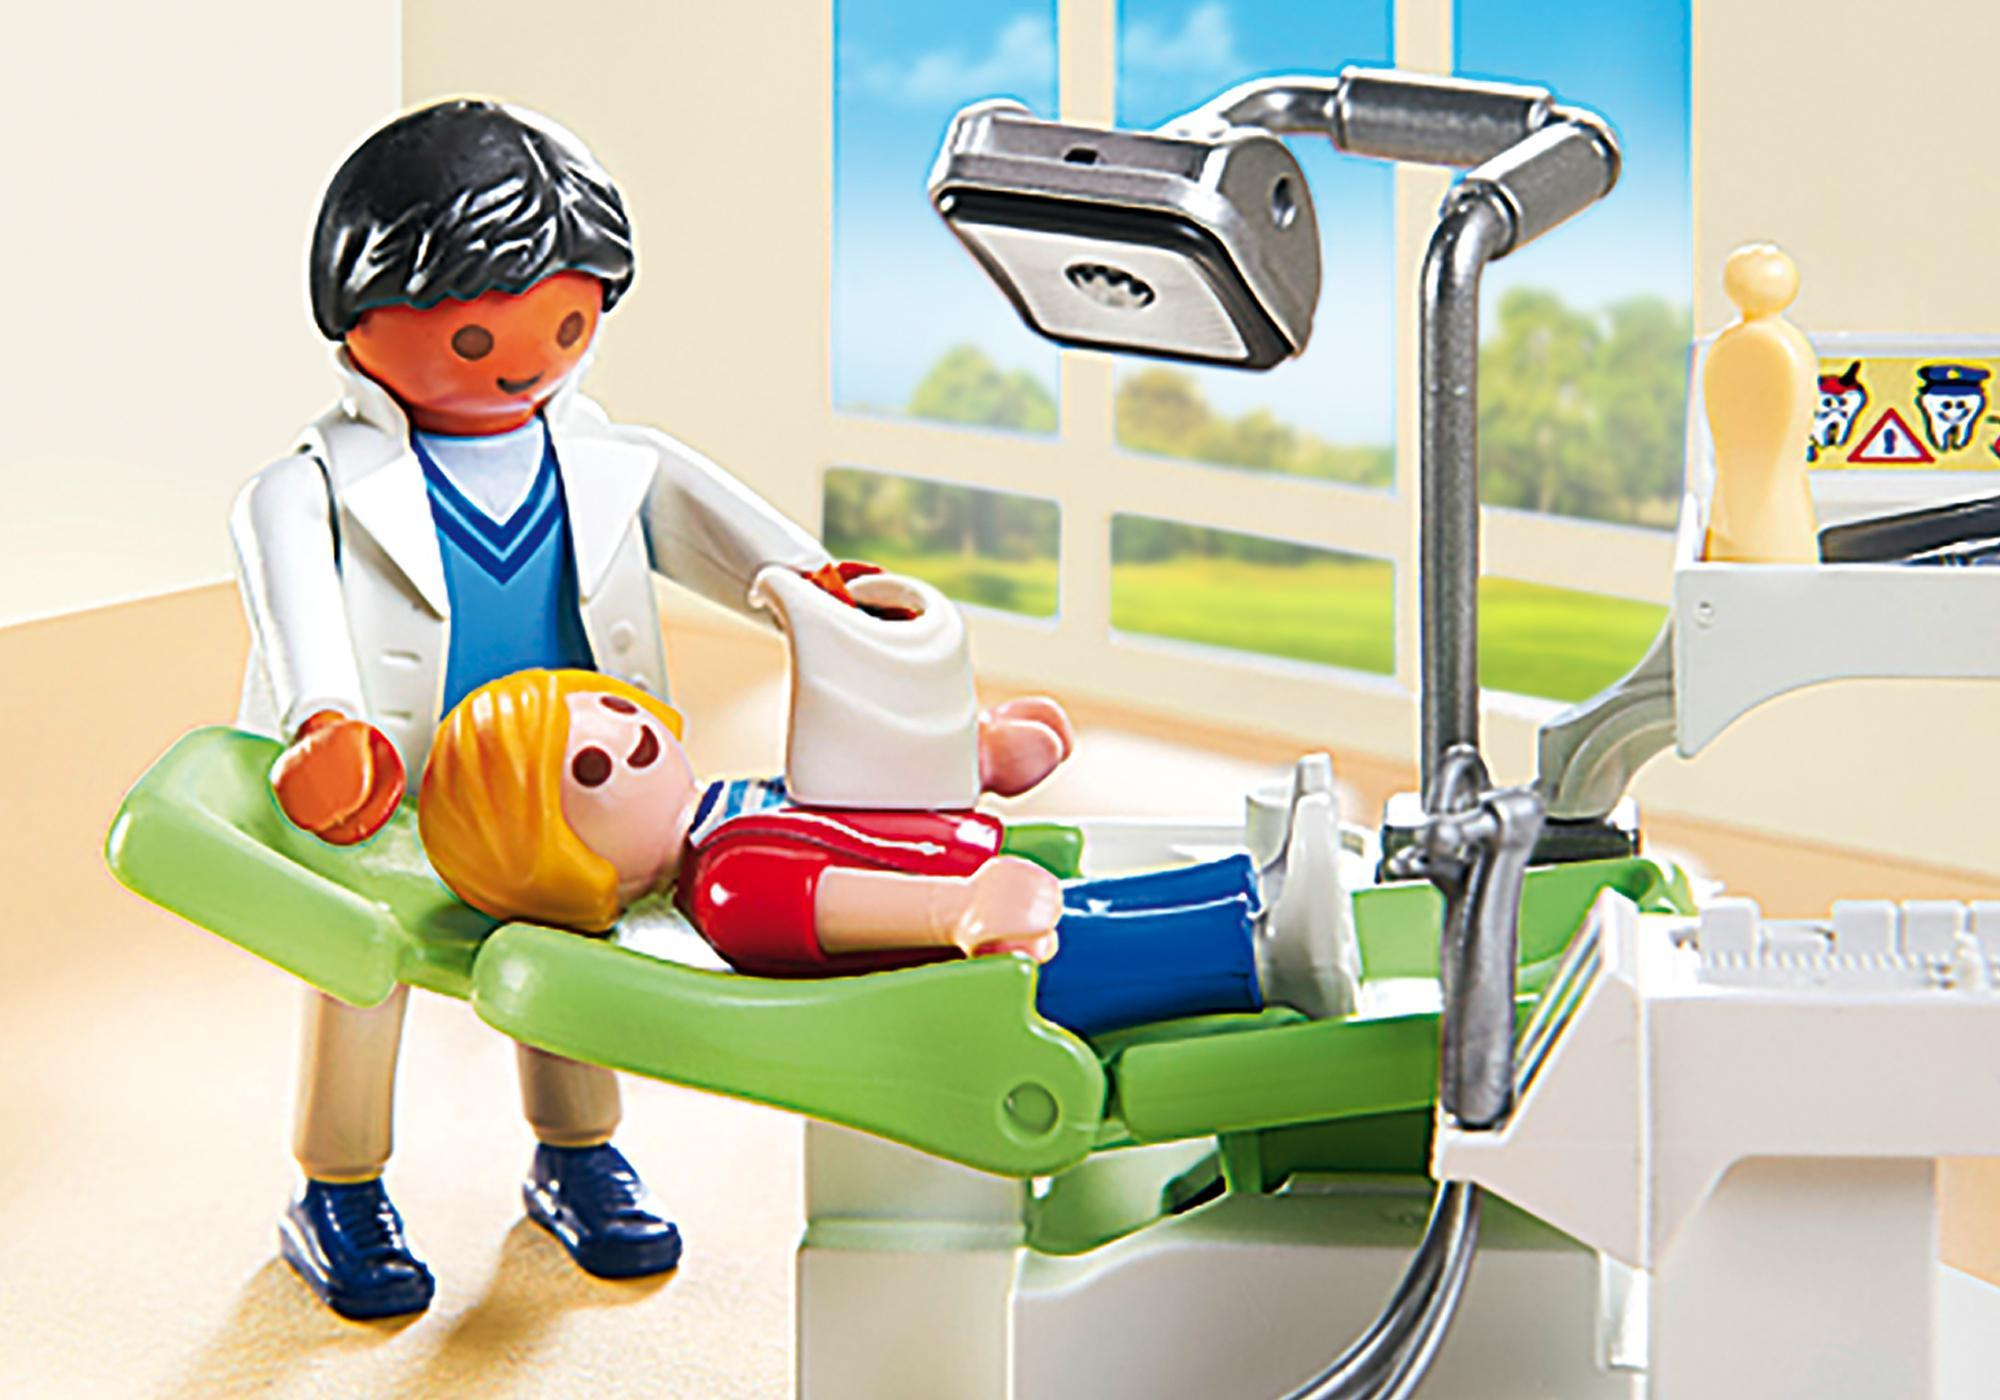 http://media.playmobil.com/i/playmobil/6662_product_extra1/Dentista com Paciente